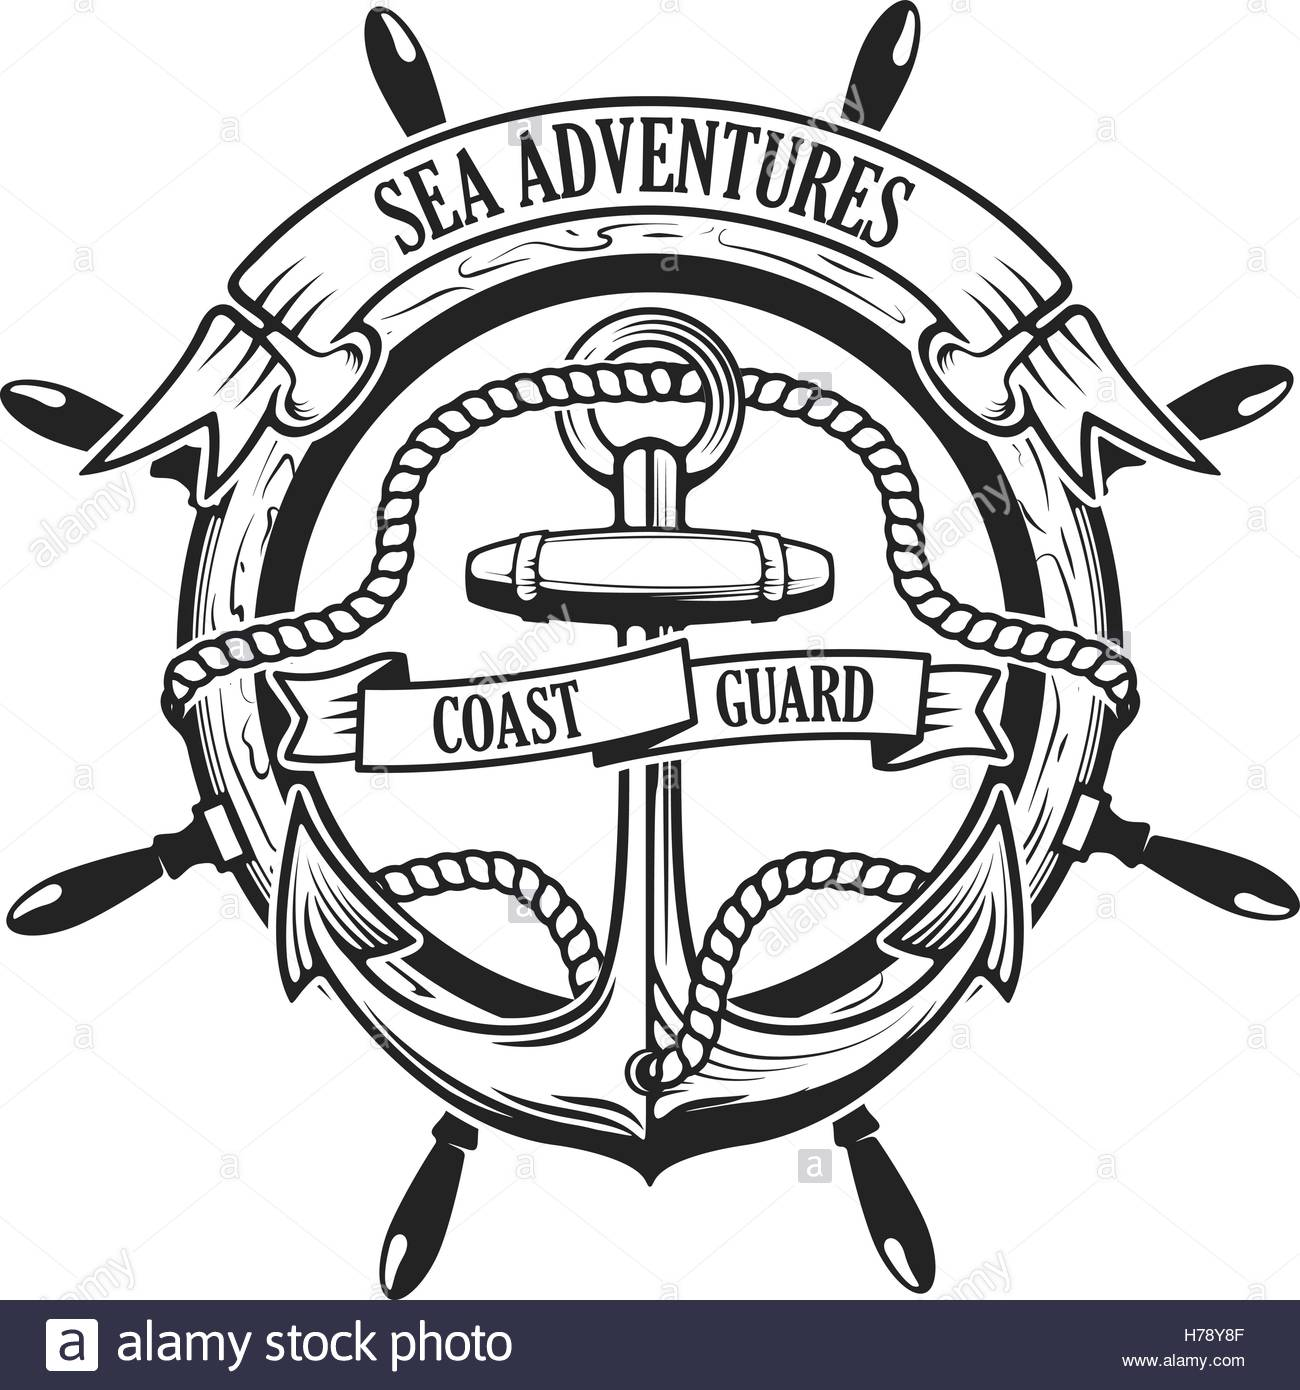 1300x1390 Sea Adventures. Coast Guard. Anchor With Rope And Ribbons On Stock